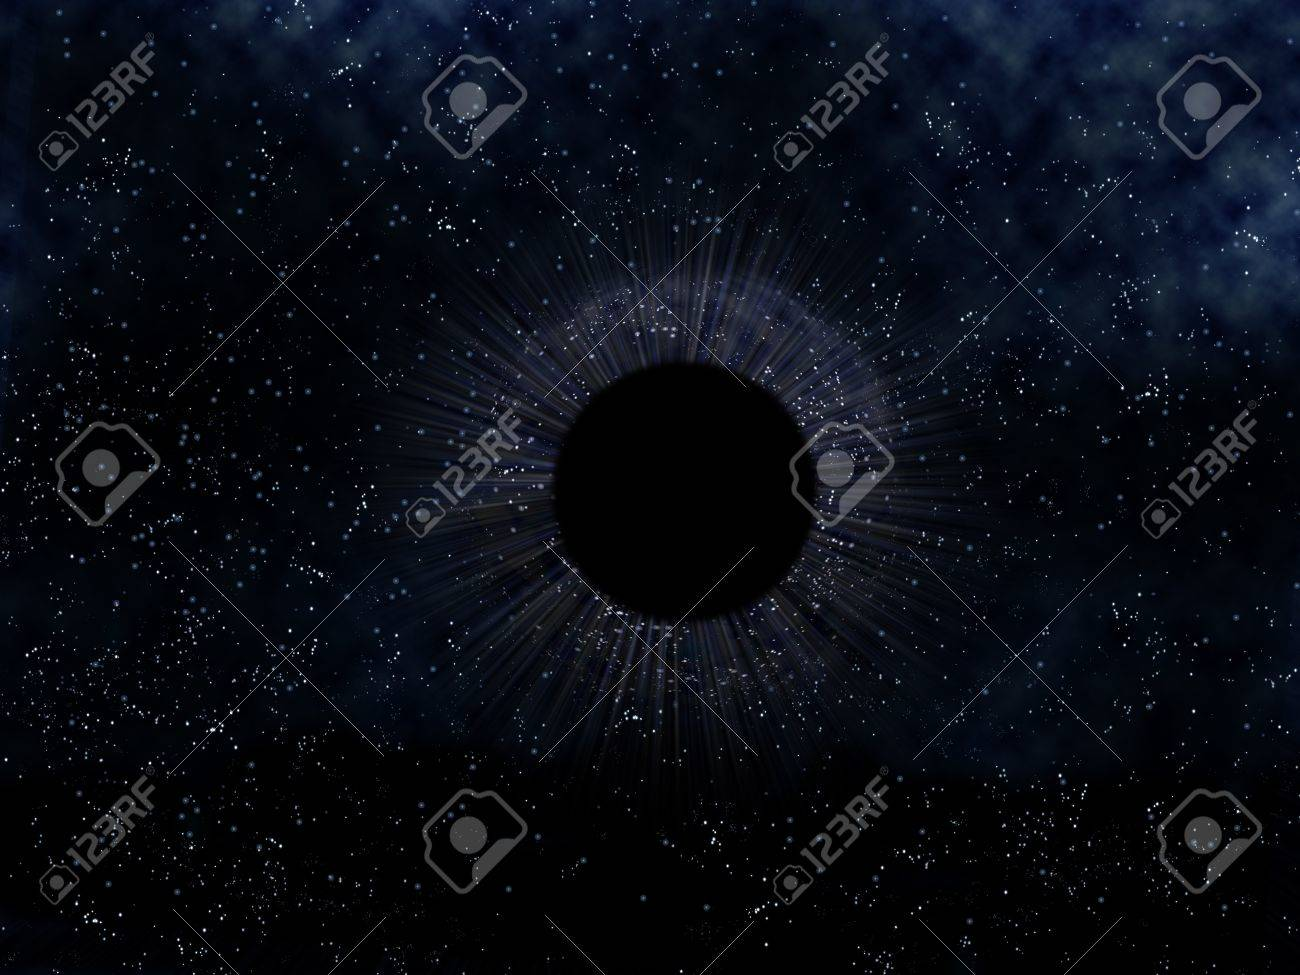 Outer Space Black Hole Black Hole in Outer Space